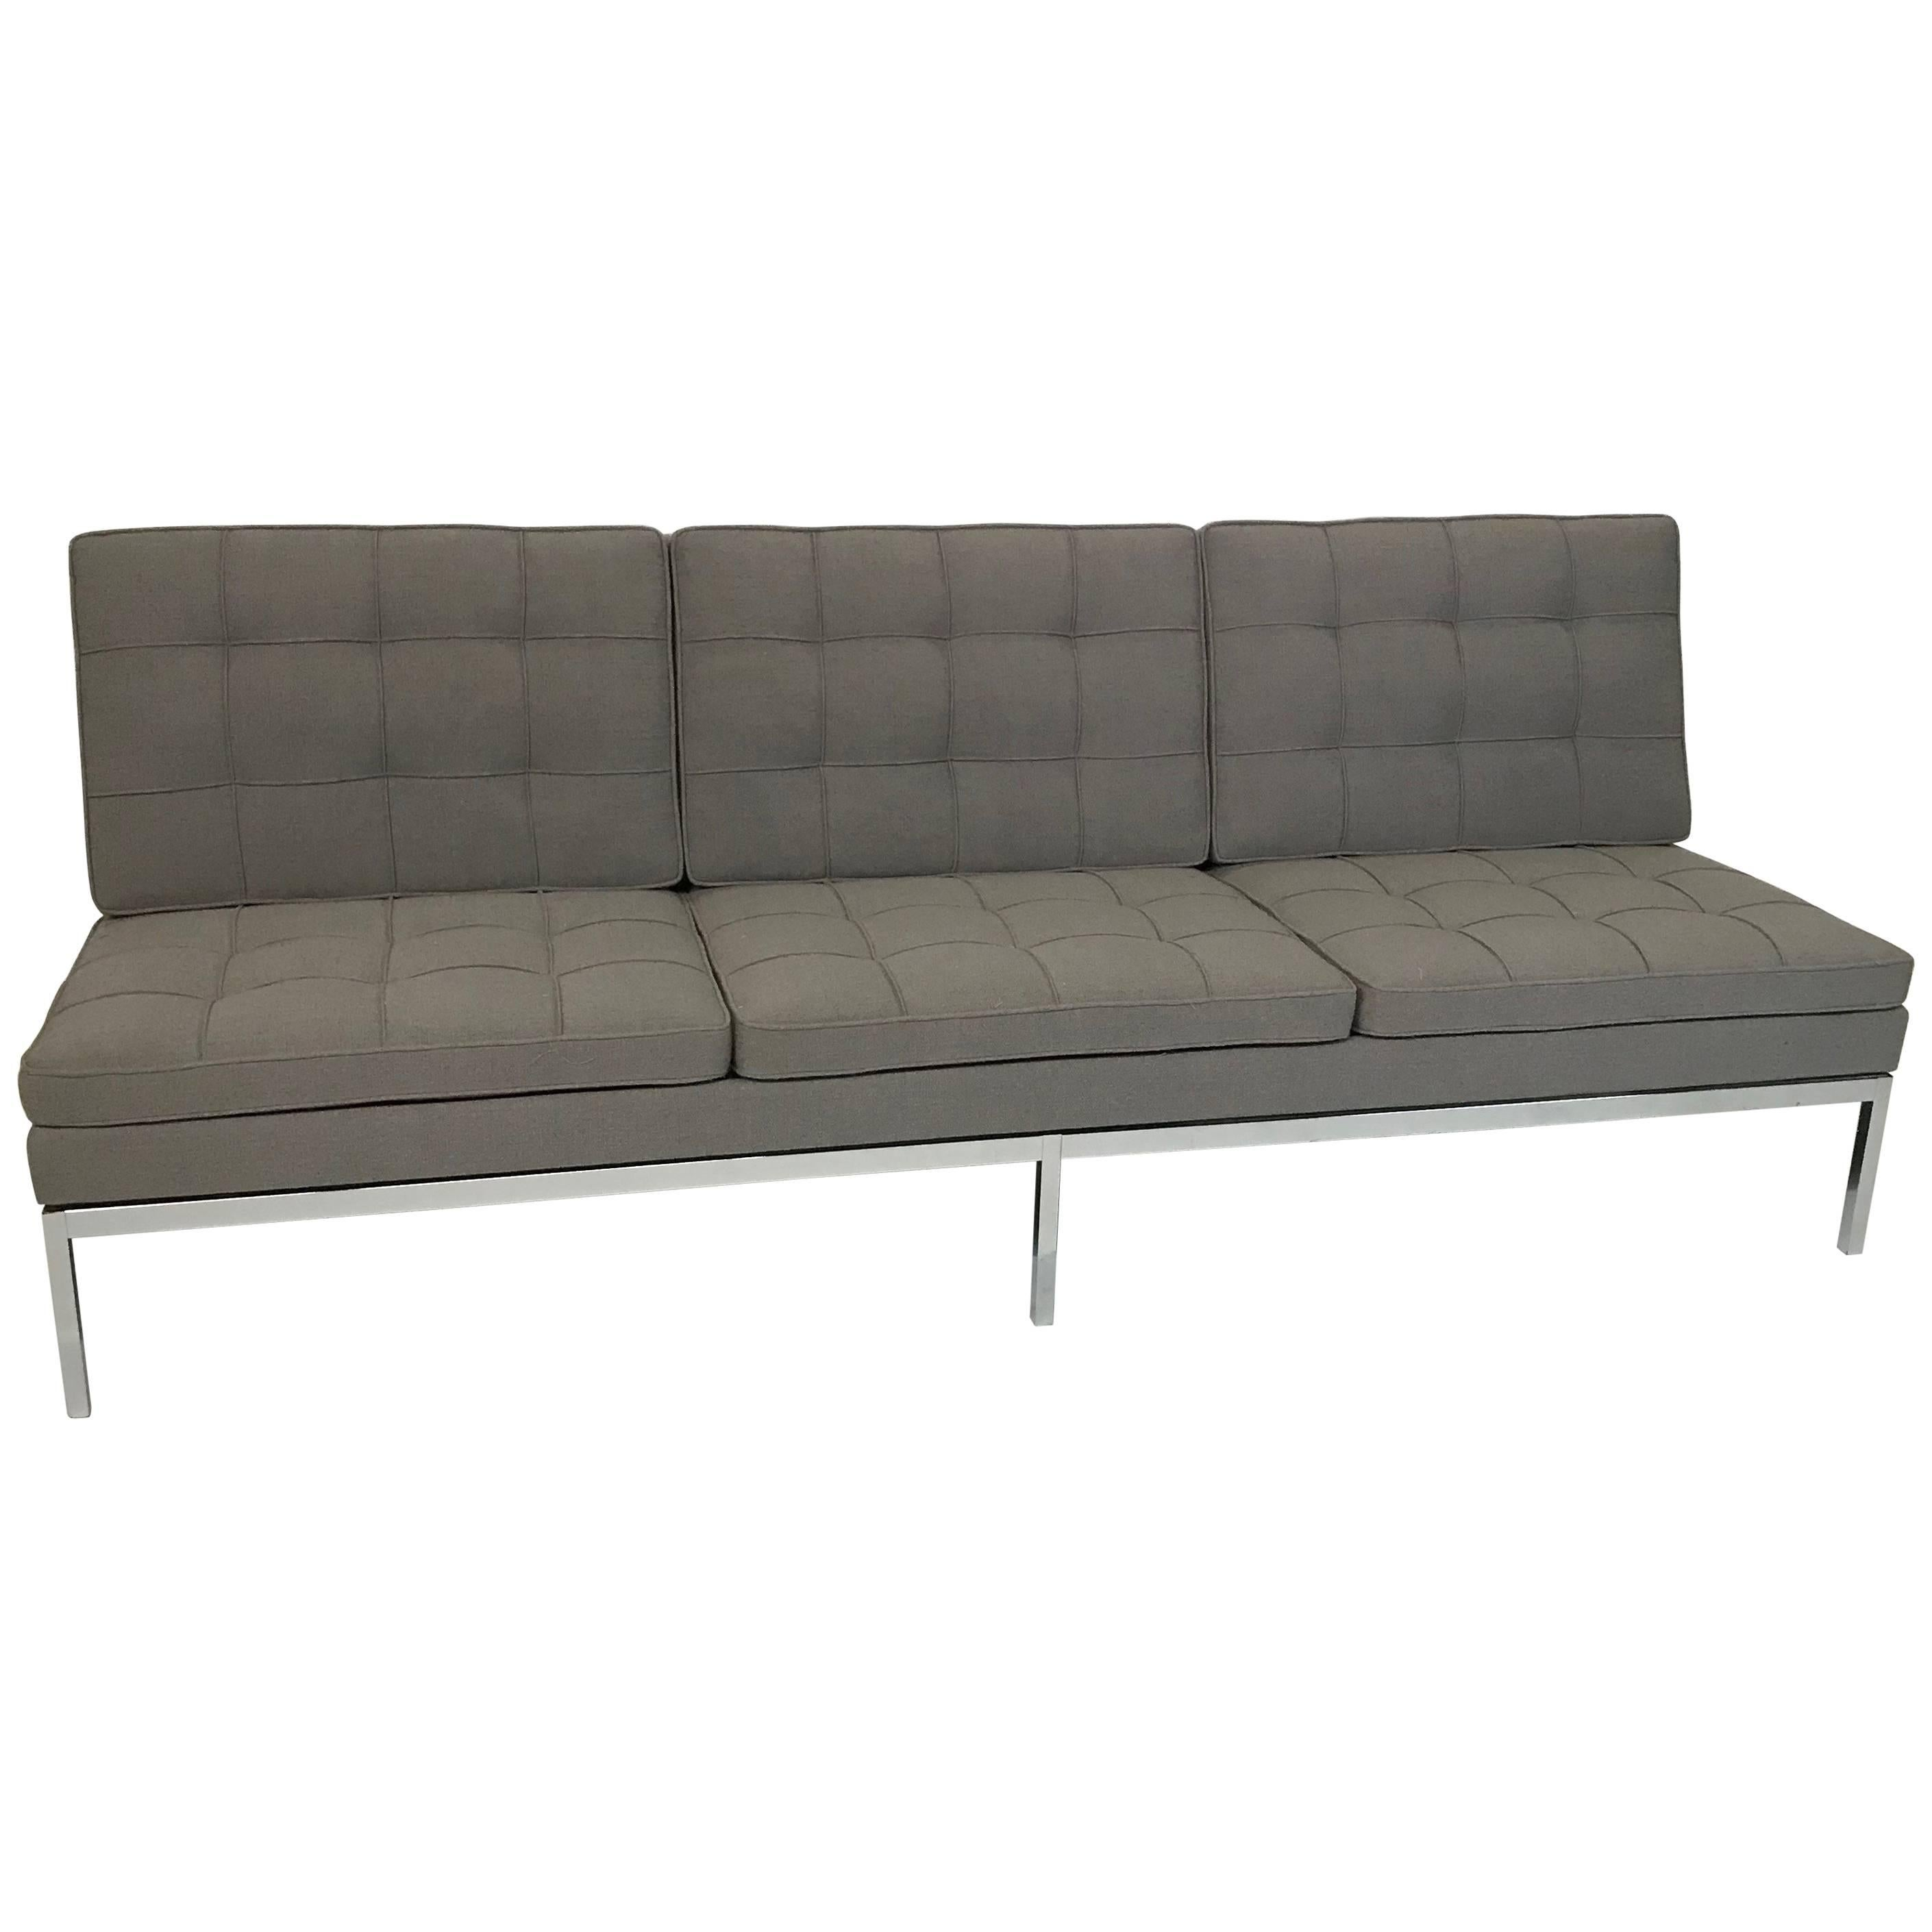 armless sofas pictures of sofa tables behind florence knoll upholstered three seat at 1stdibs